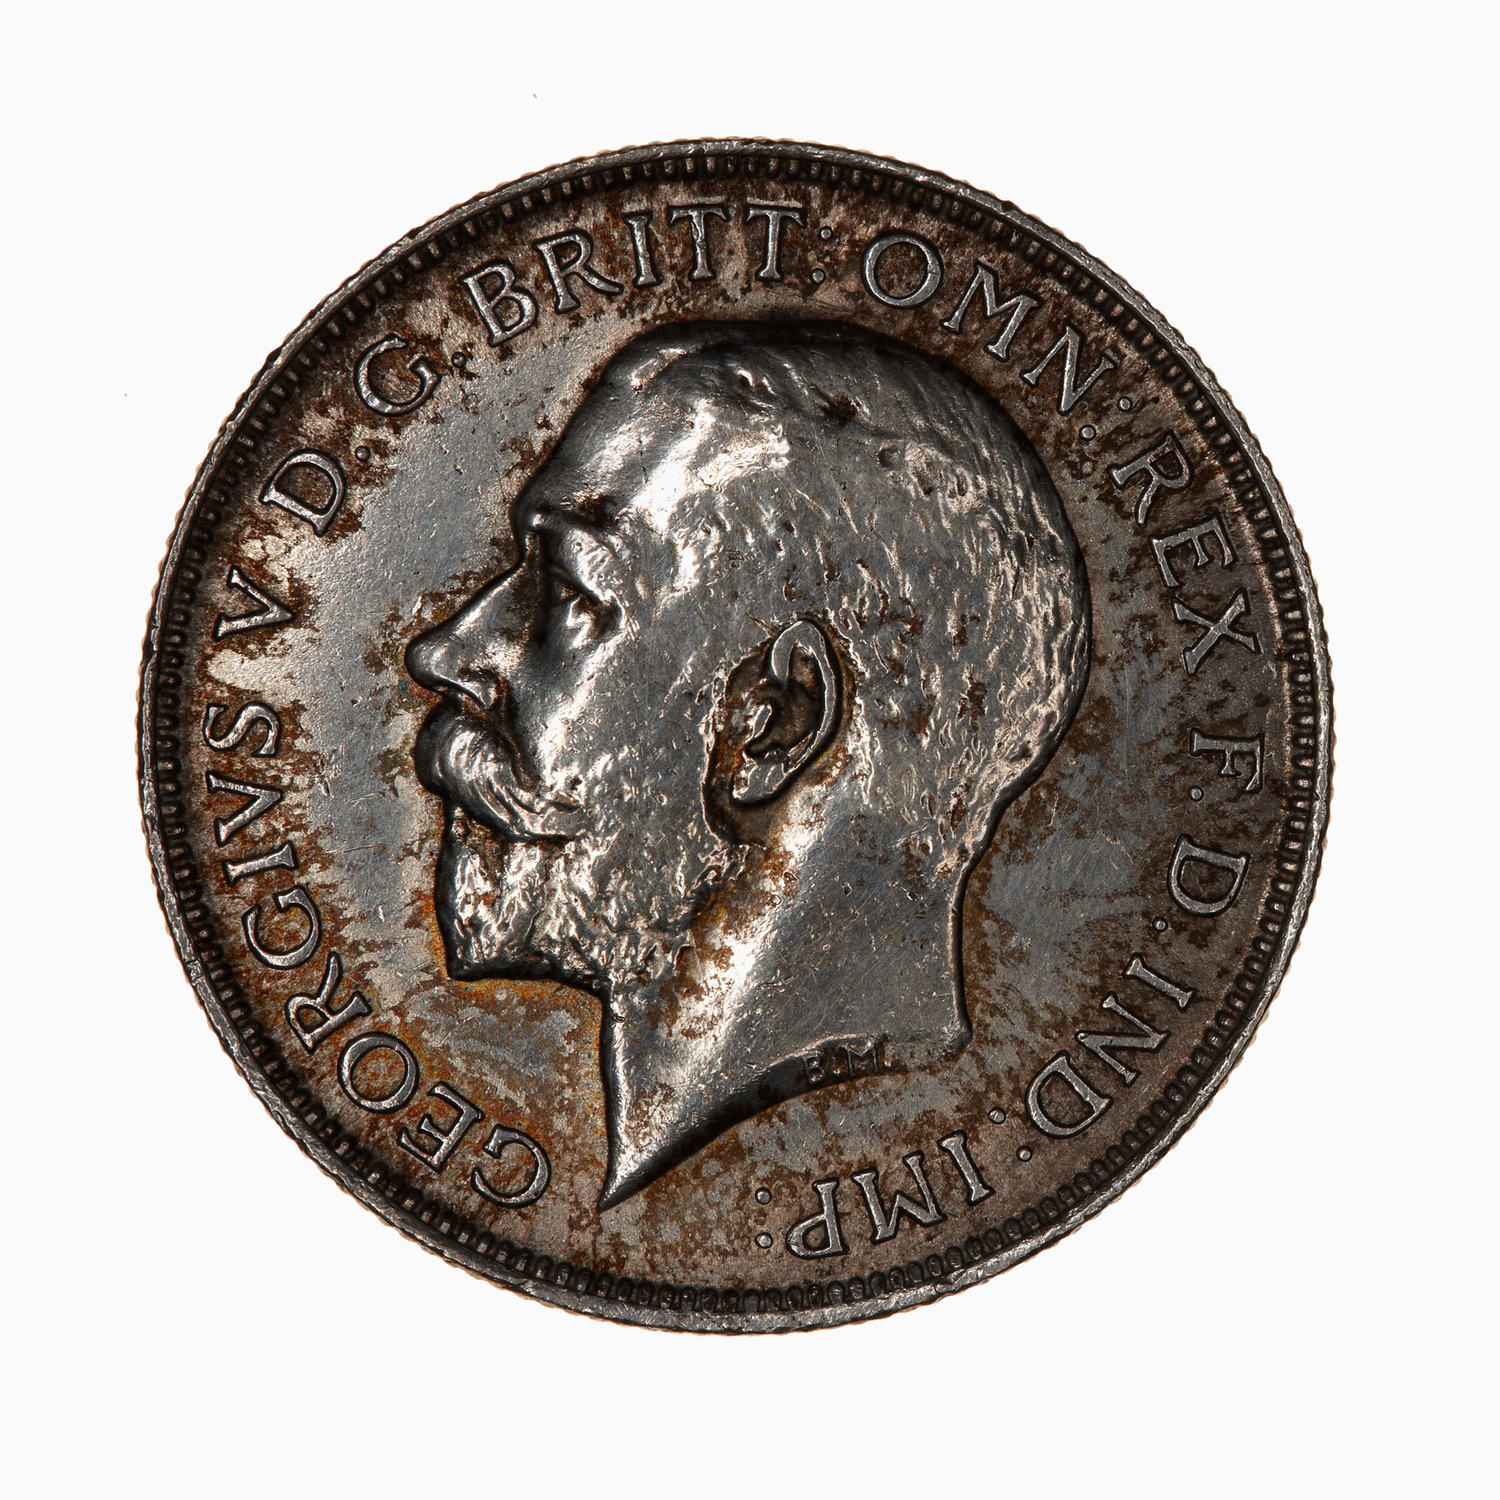 Florin George V First Issue: Photo Coin - Florin (2 Shillings), George V, Great Britain, 1911